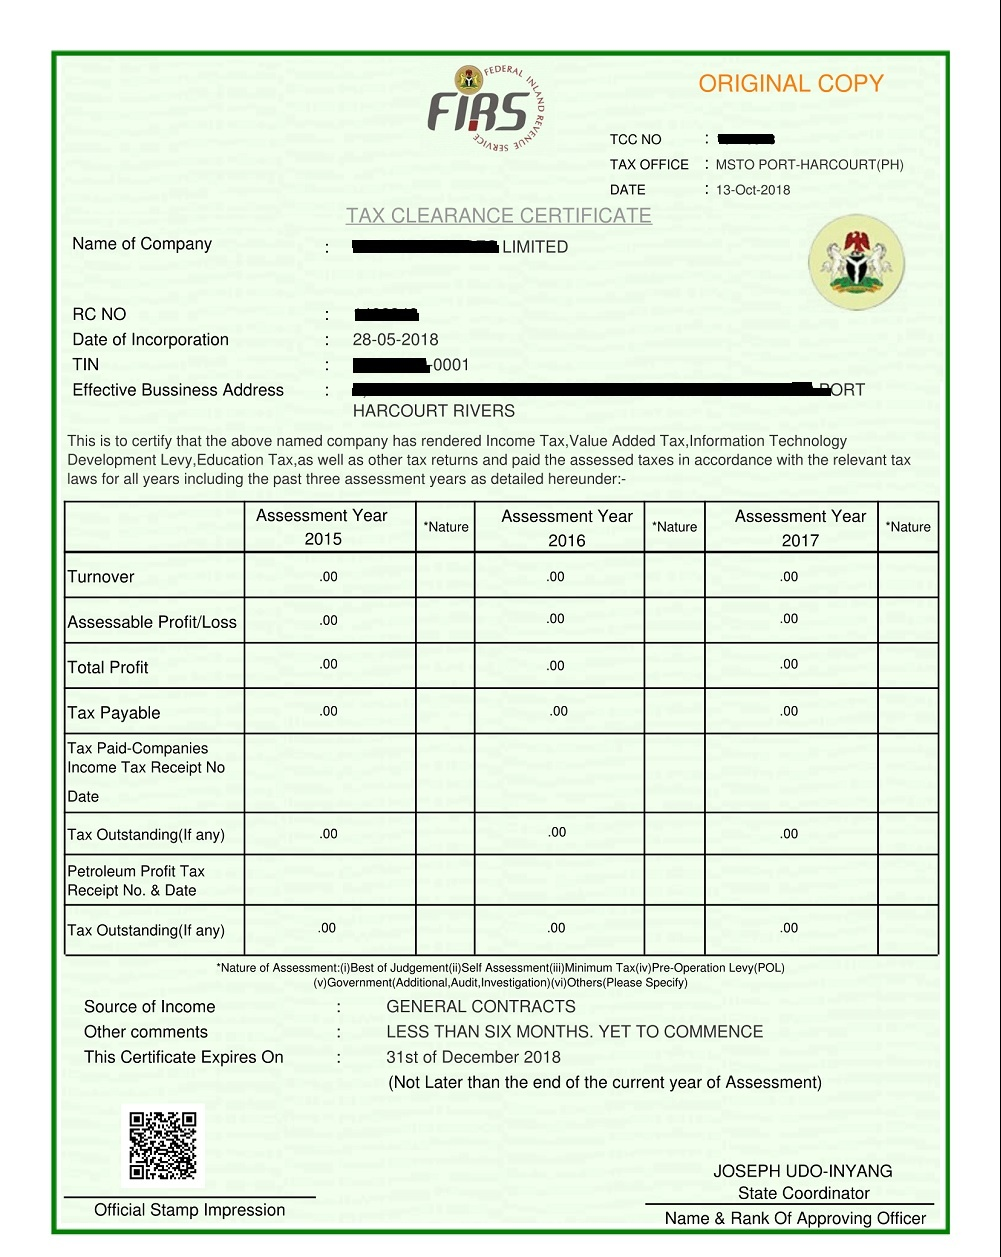 clearance certificate tax firs grace gives business revenue federal nairaland businesspost ng obtain statement nigeria signed